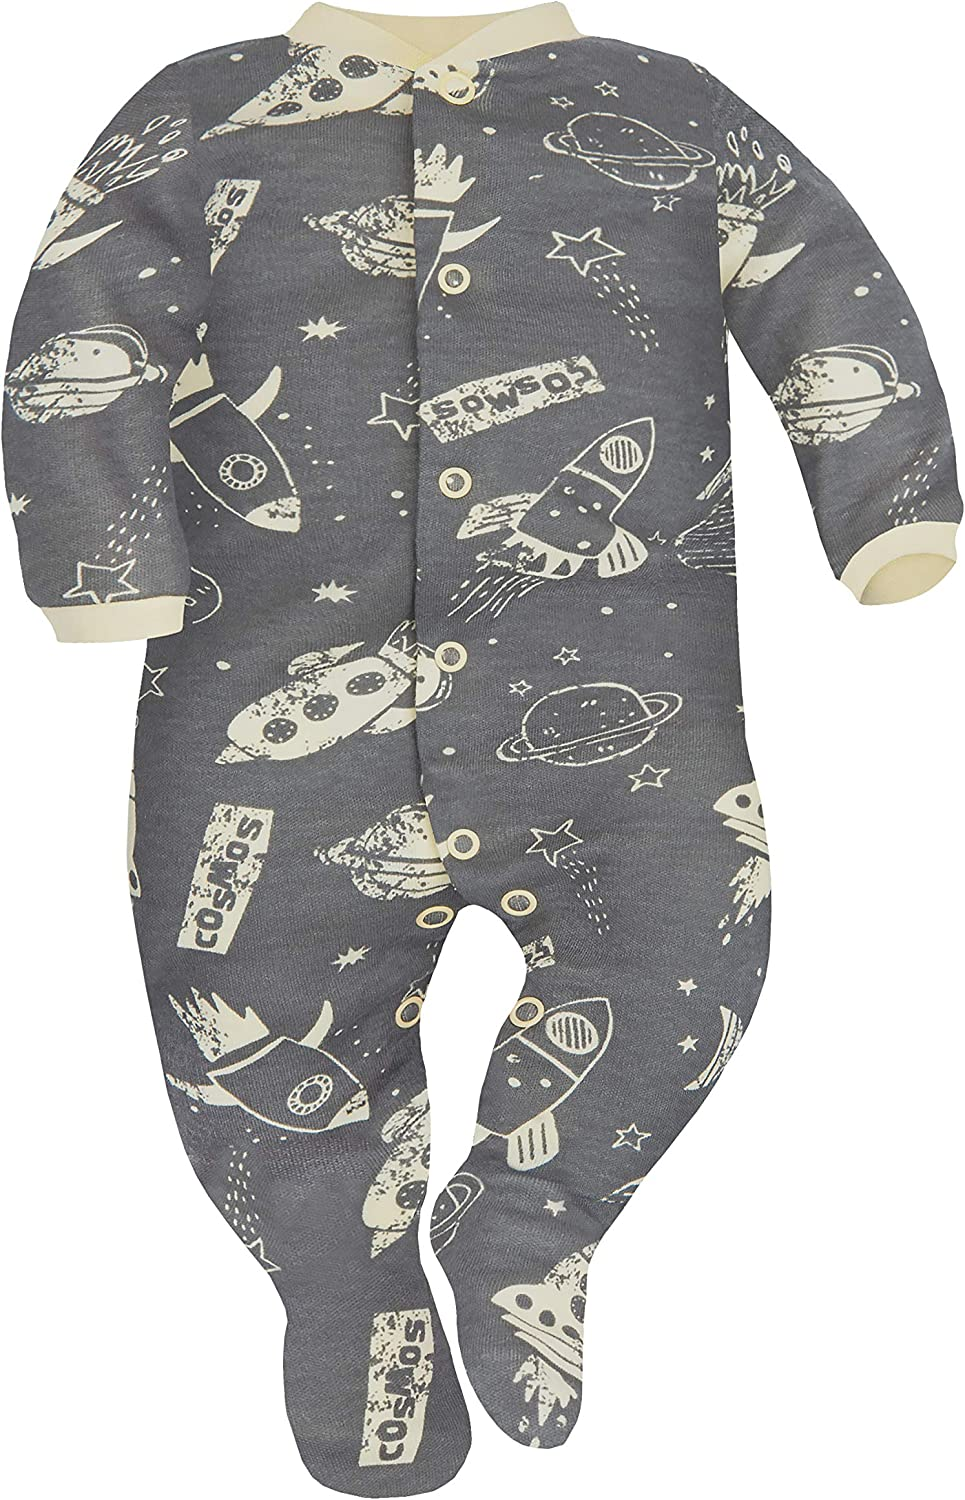 Sizes 0-9 Months Pack of 2 SIBINULO Baby Boys Baby Girls Sleepsuit with Feet Mix